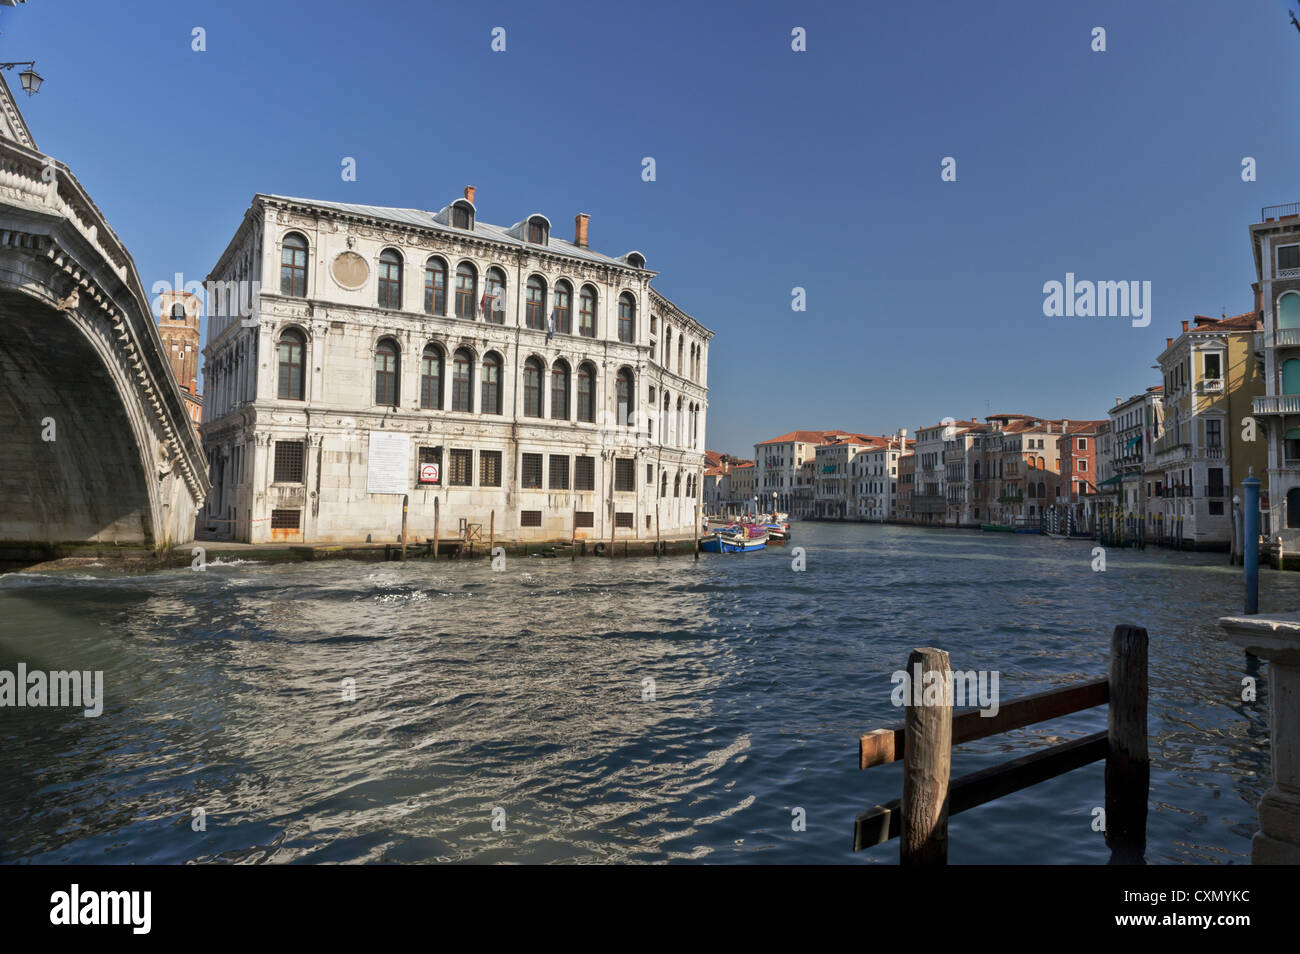 Magistrate building by the Grand canal and Rialto bridge, Venice, Italy. - Stock Image